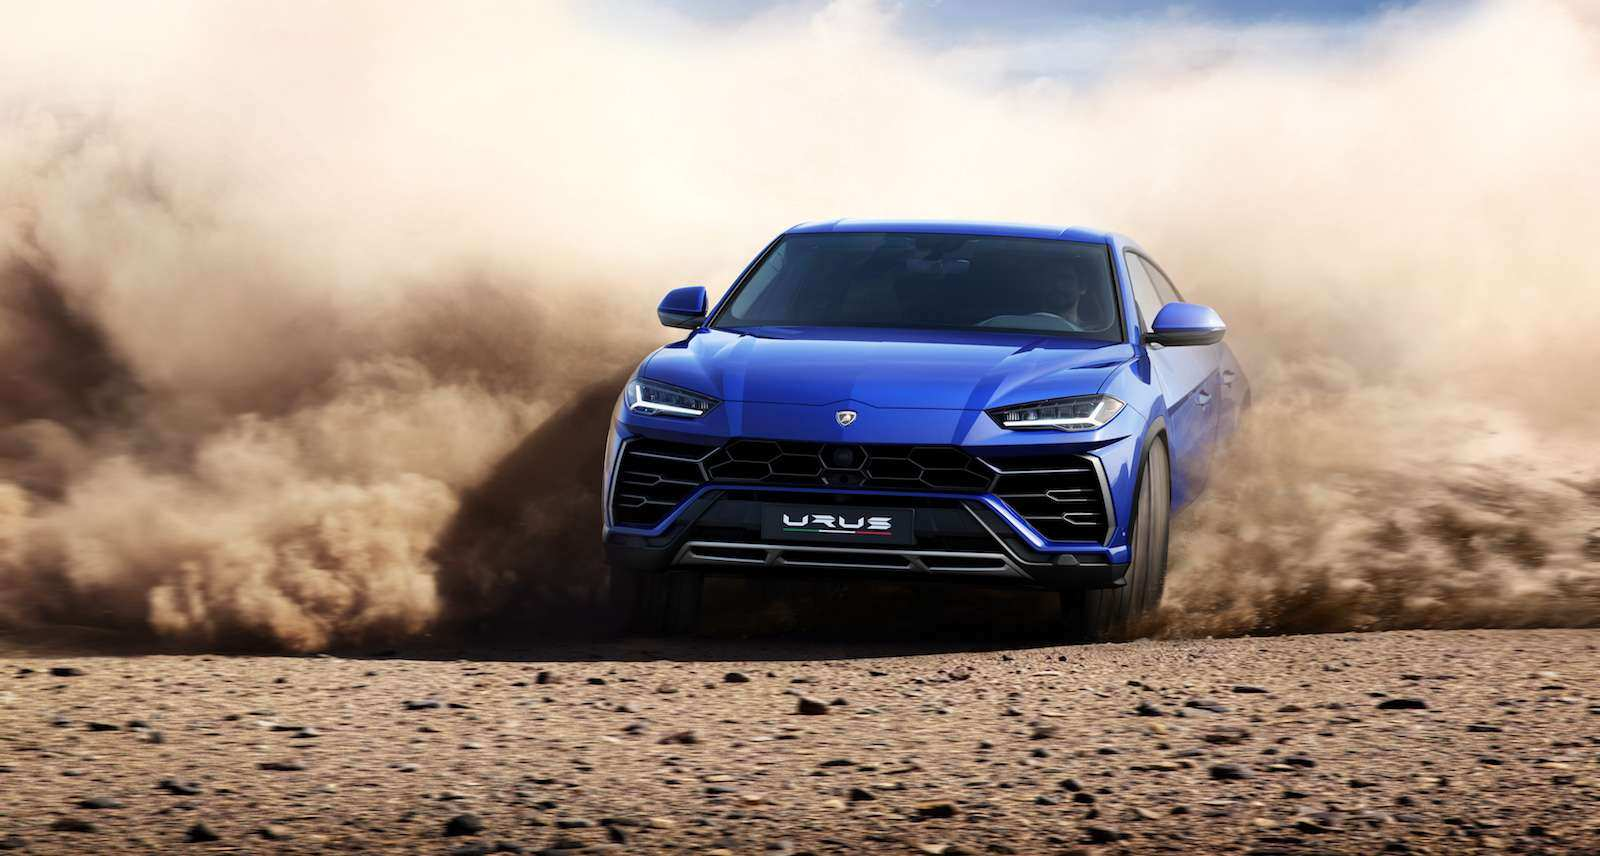 85 All New 2019 Lamborghini Urus Price Speed Test for 2019 Lamborghini Urus Price